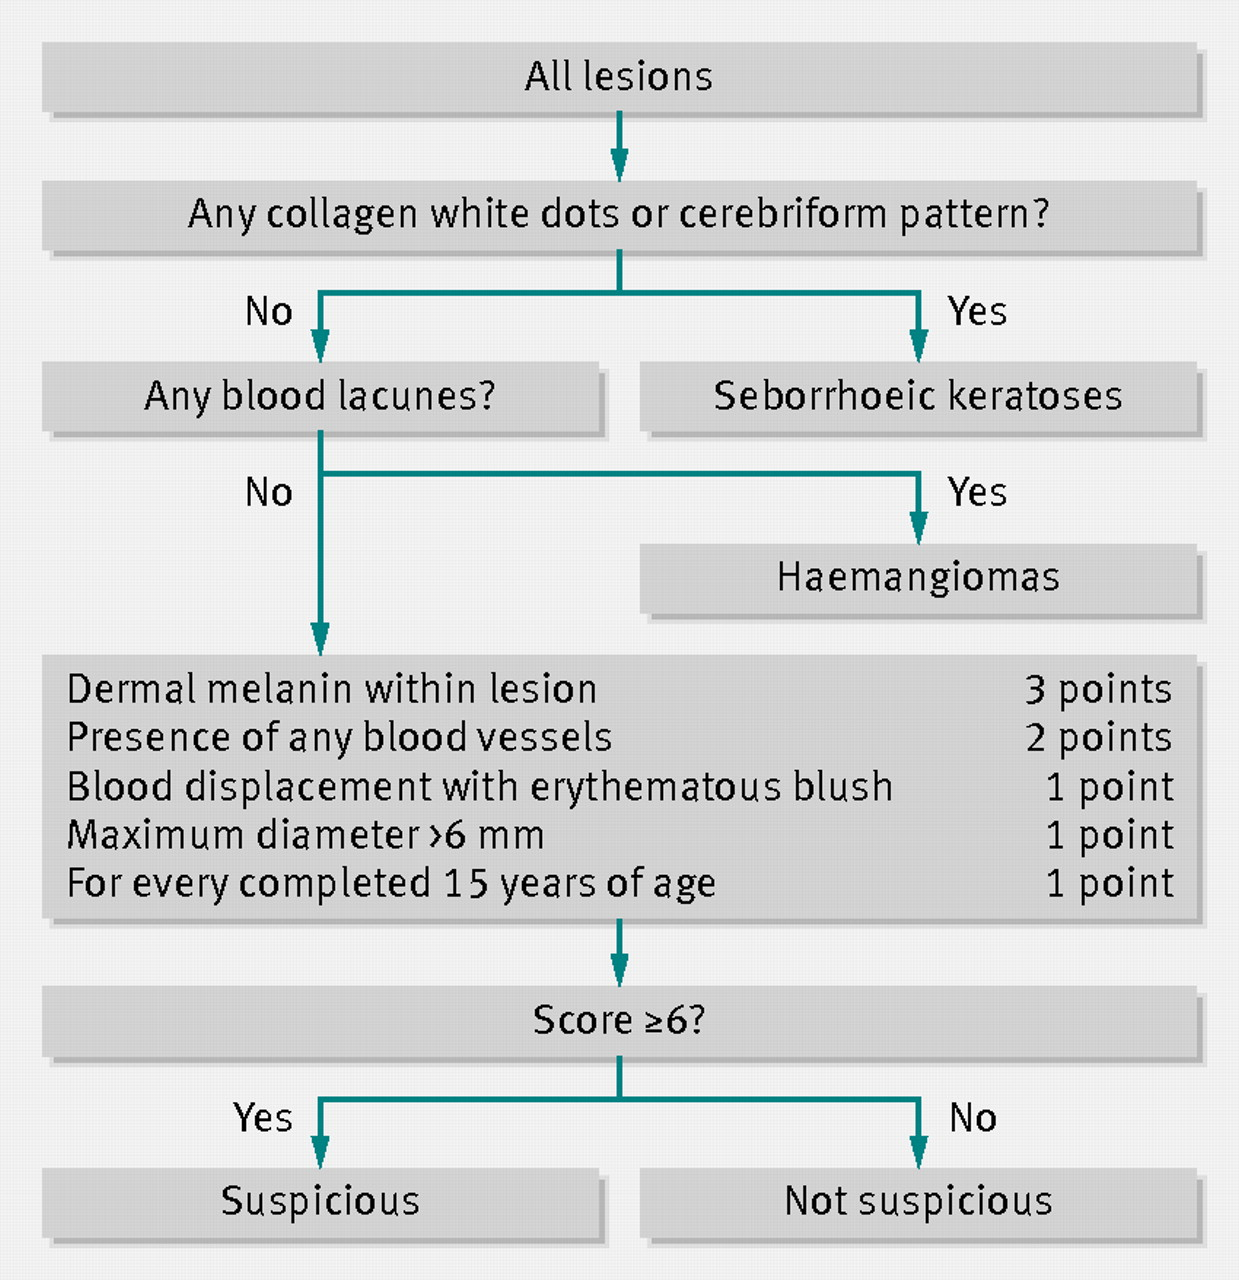 Effect Of Adding A Diagnostic Aid To Best Practice To Manage Suspicious Pigmented Lesions In Primary Care Randomised Controlled Trial The Bmj